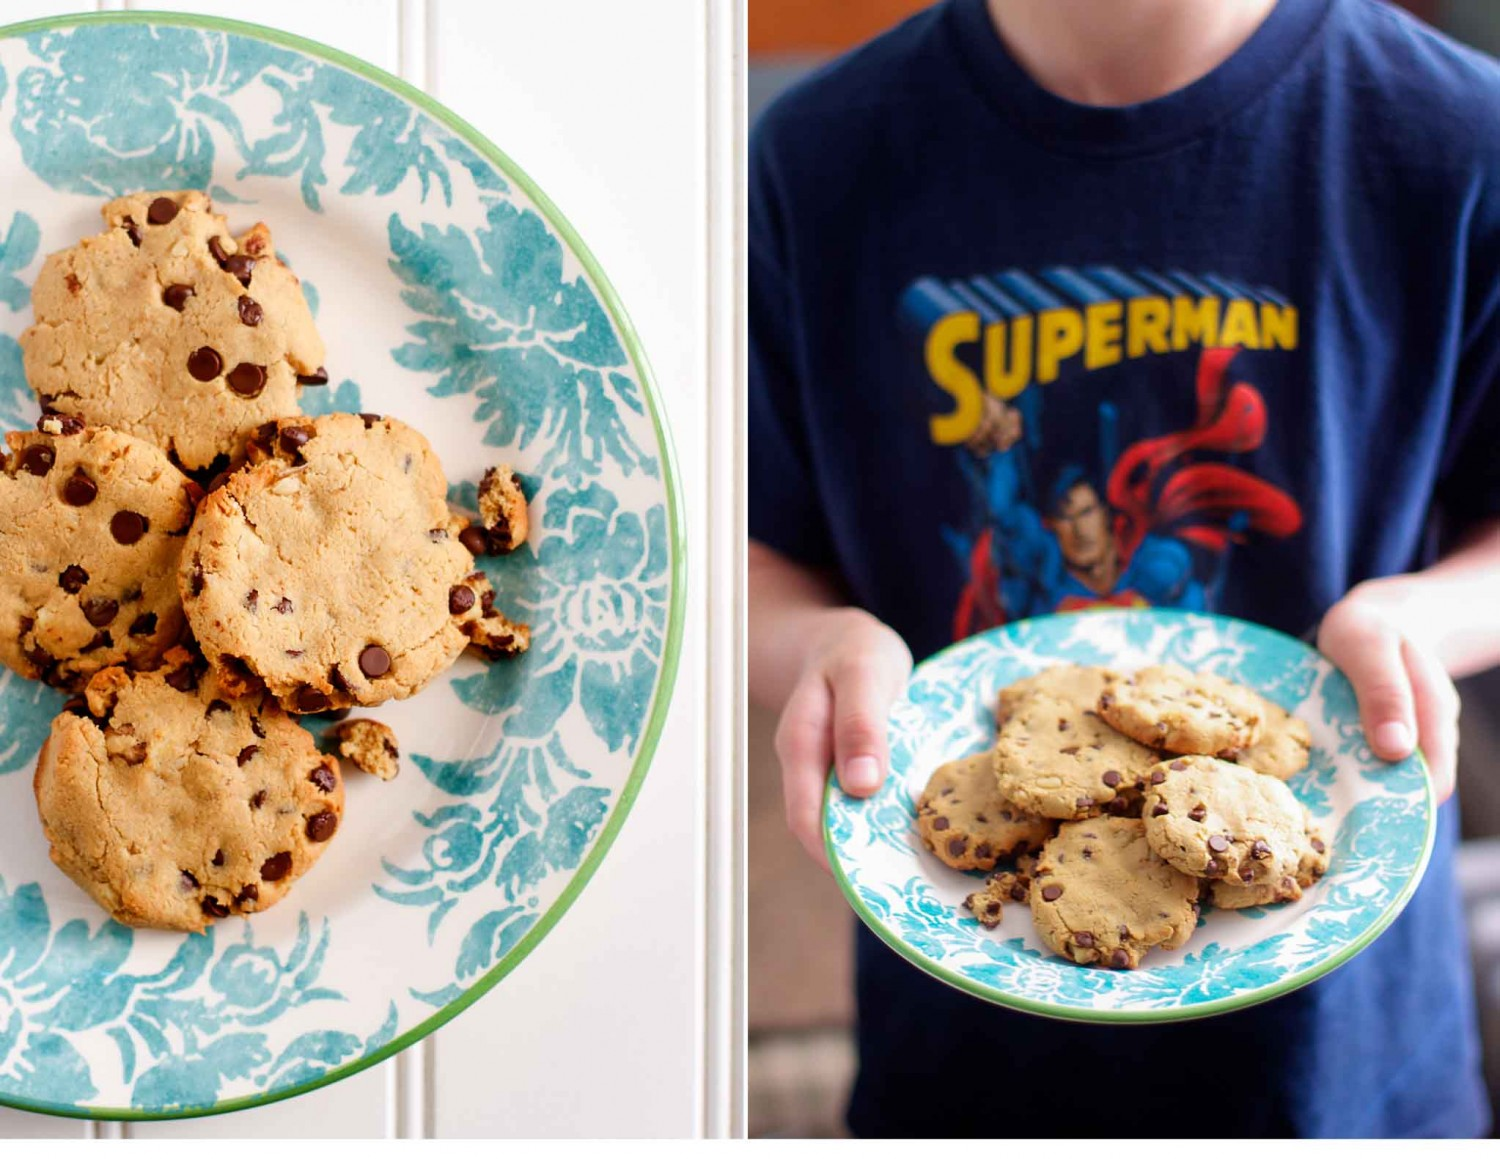 ... chip cookie best big fat chewy chocolate chip cookie chocolate chip